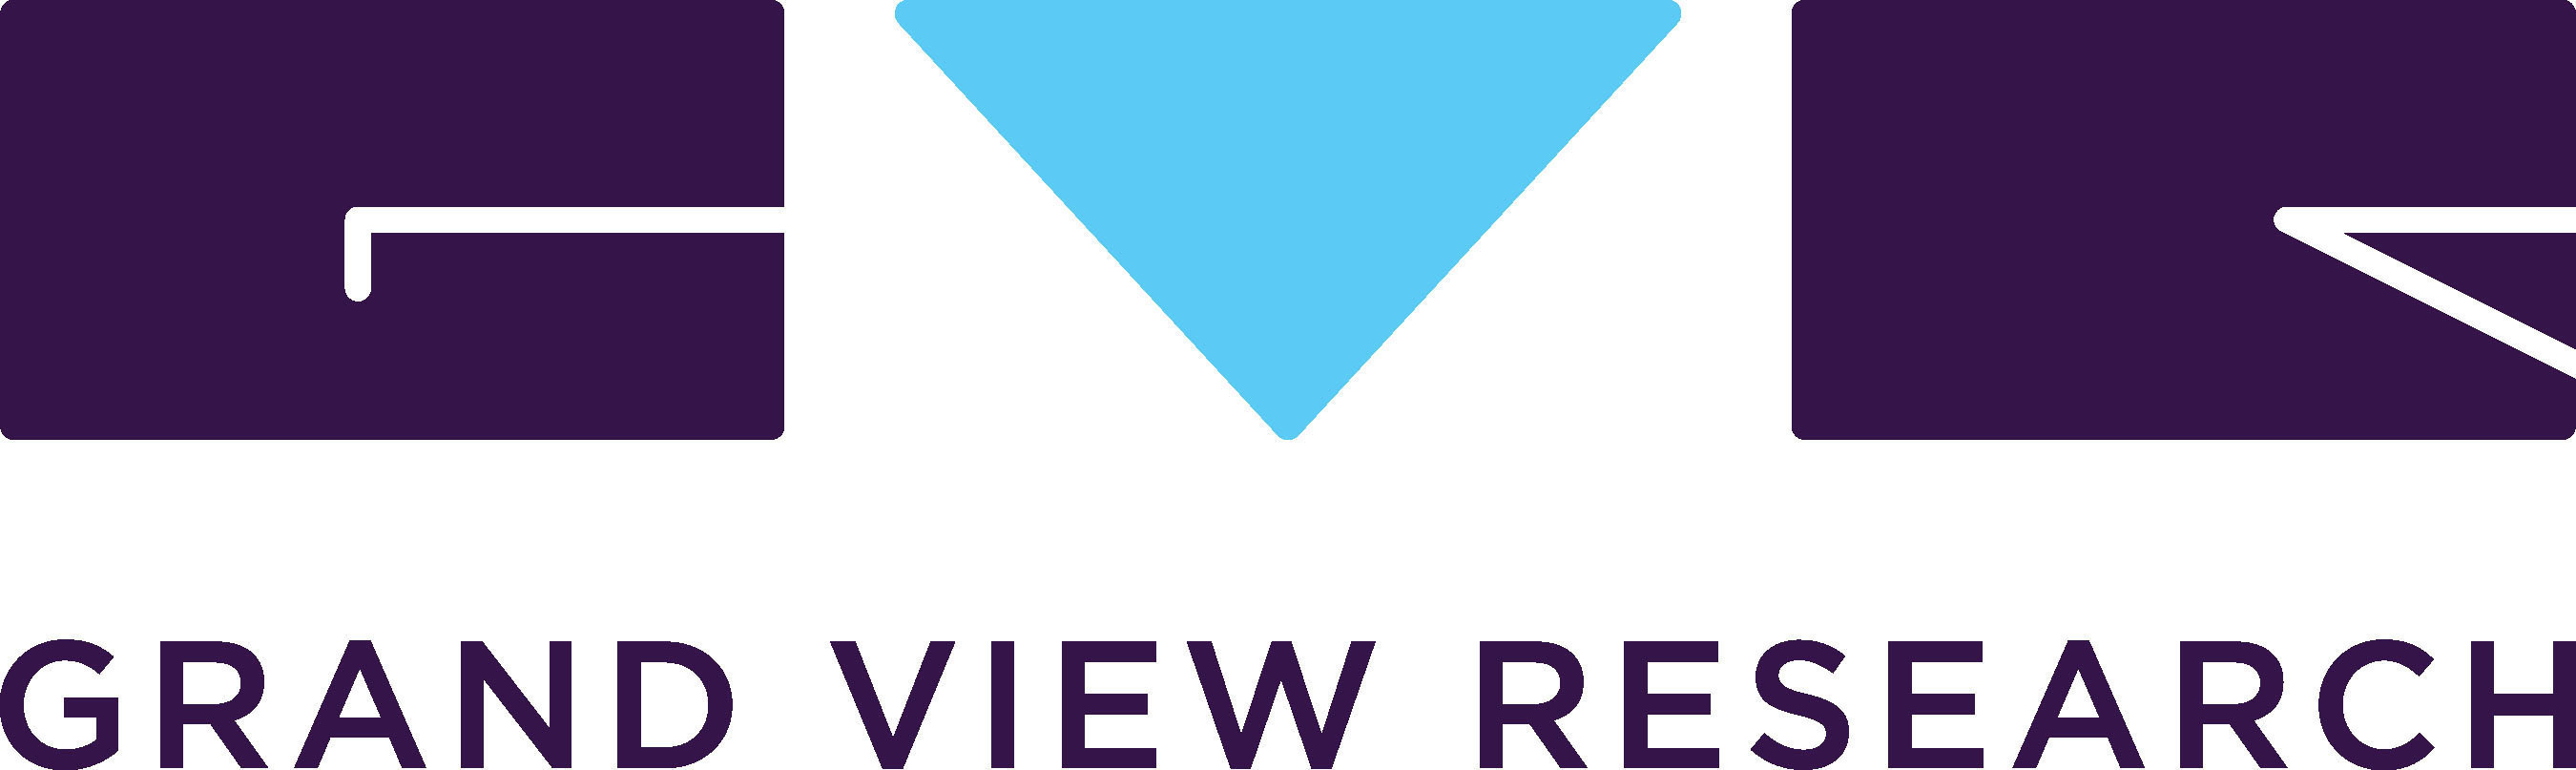 Demand Response Management System Market Worth $35.9 Billion By 2025: Grand View Research, Inc.